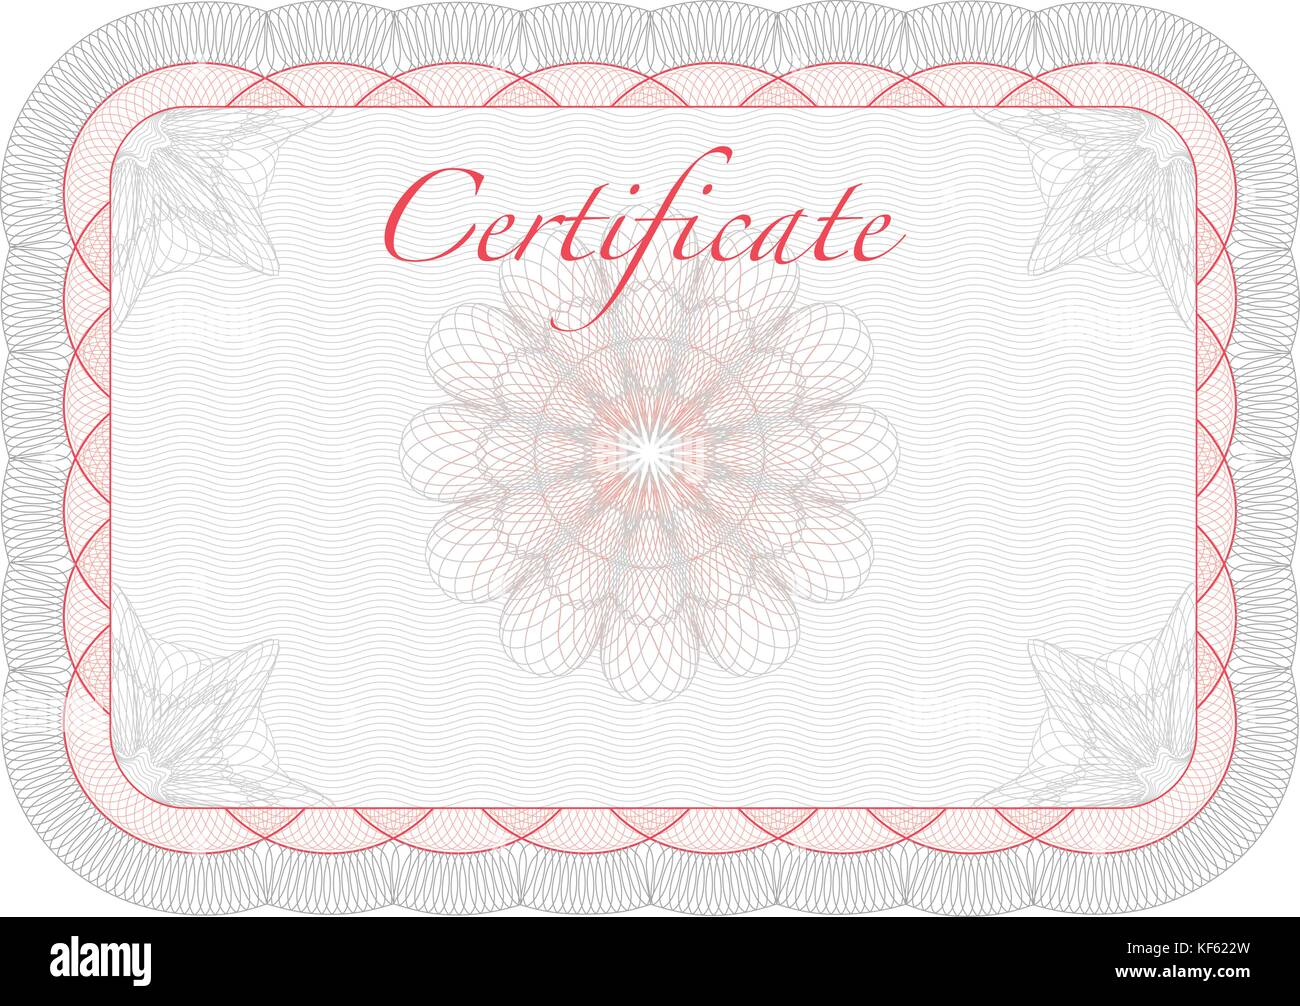 Certificate Seal Stock Photos & Certificate Seal Stock Images - Alamy